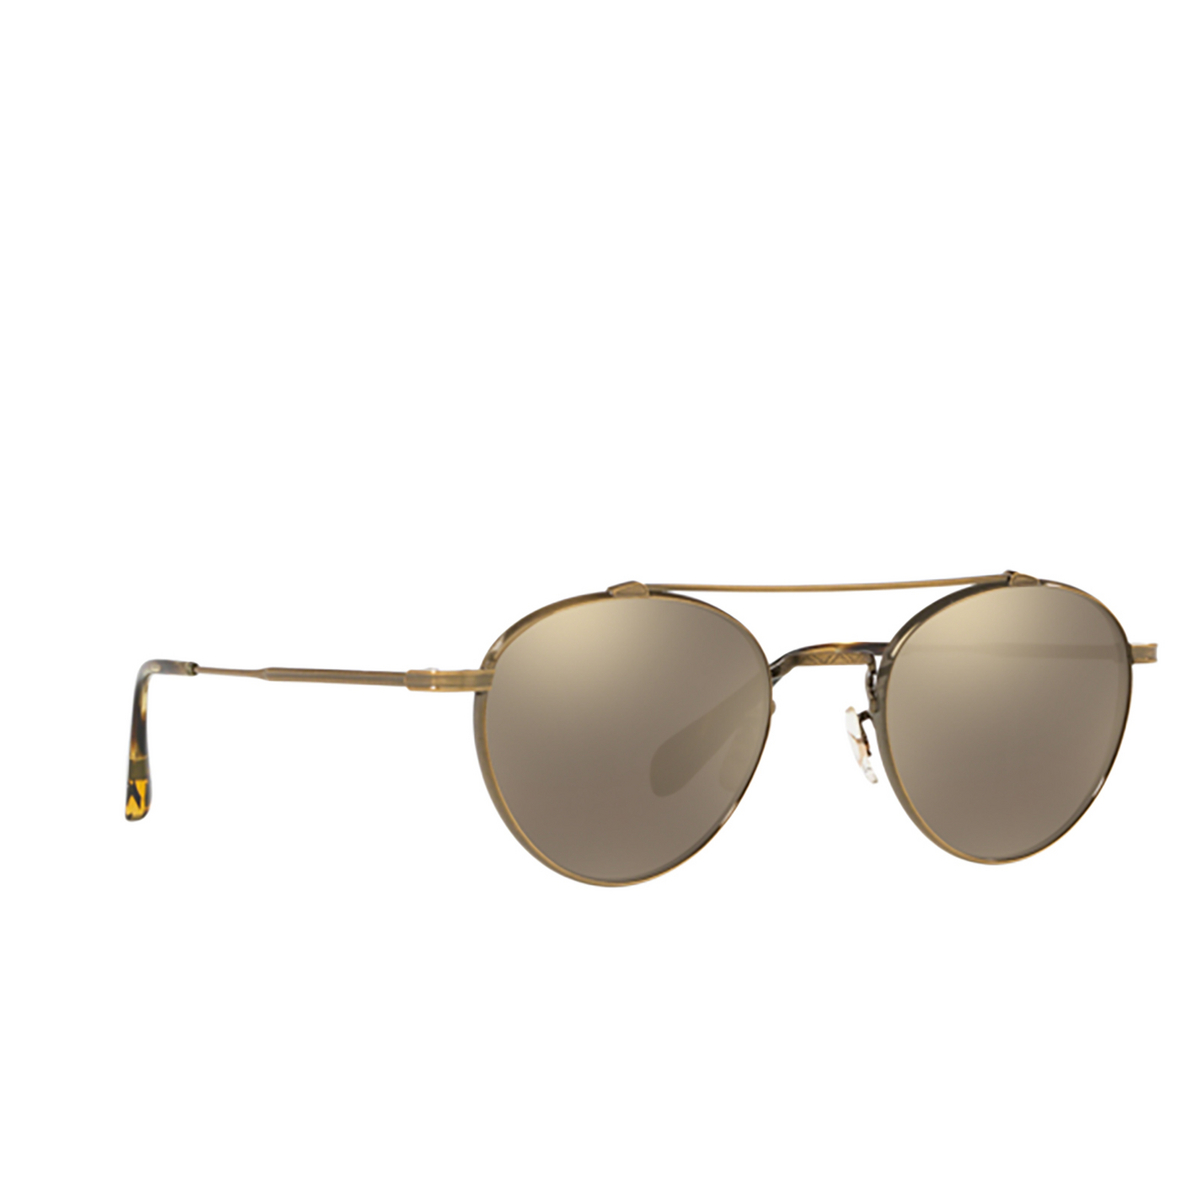 Oliver Peoples® Round Sunglasses: Watts Sun OV1223ST color Antique Gold 51246G.